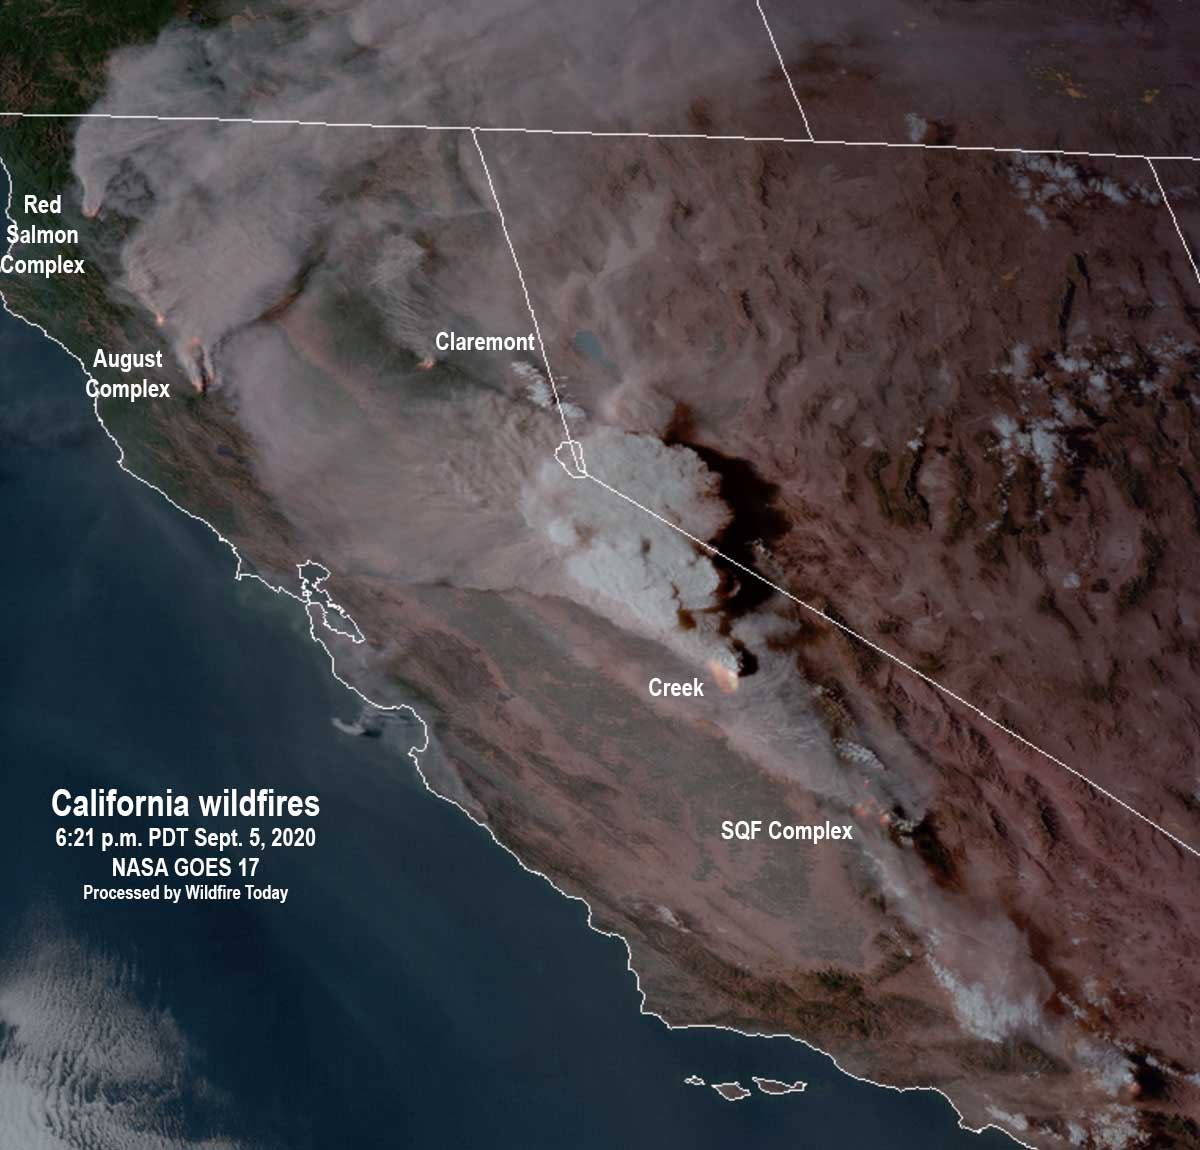 Satellite photo showing smoke from fires in California